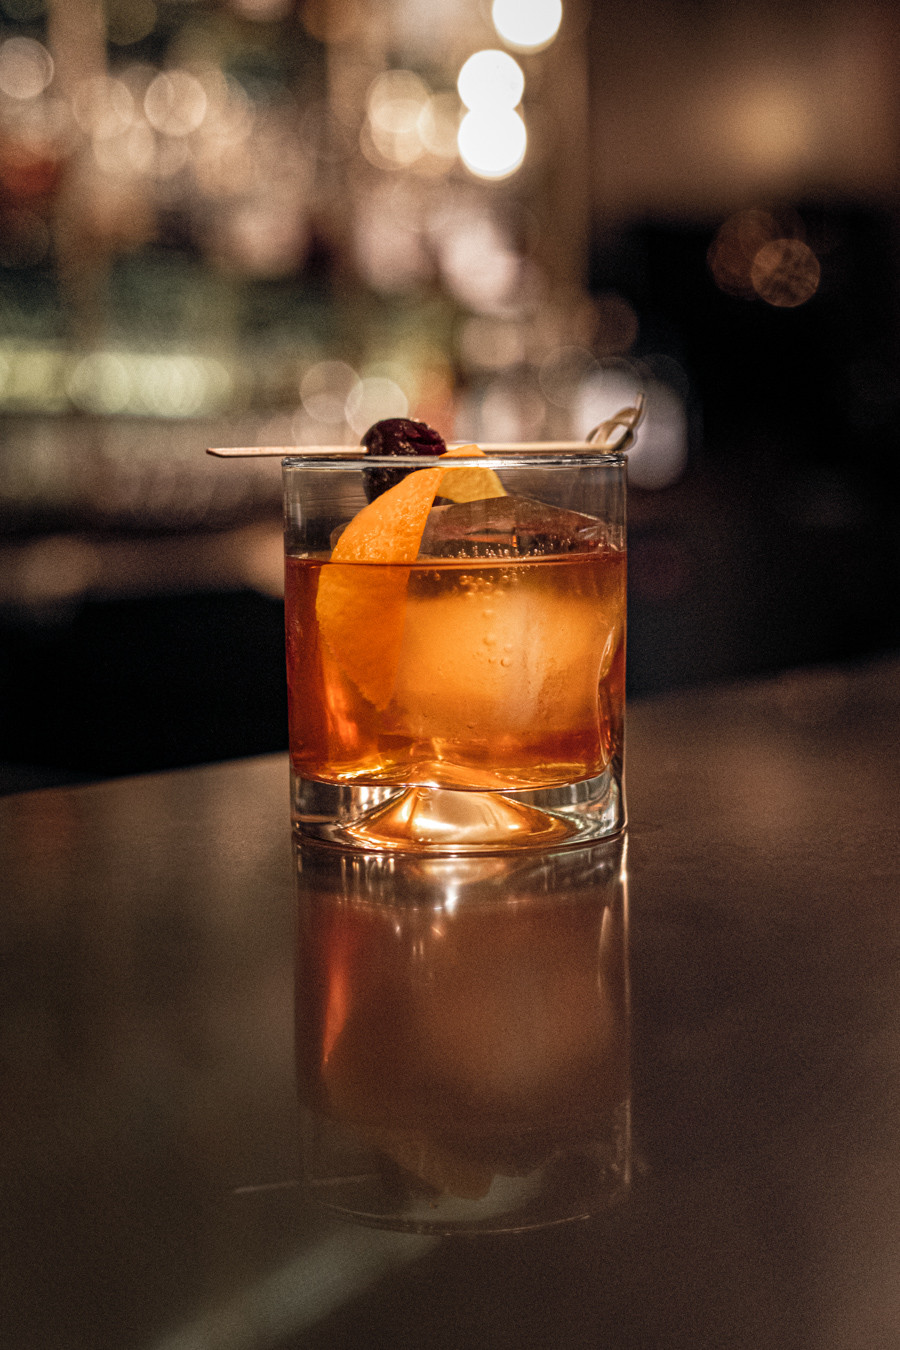 A picture of an old fashioned, made by Danielle Pingert in Saskatoon